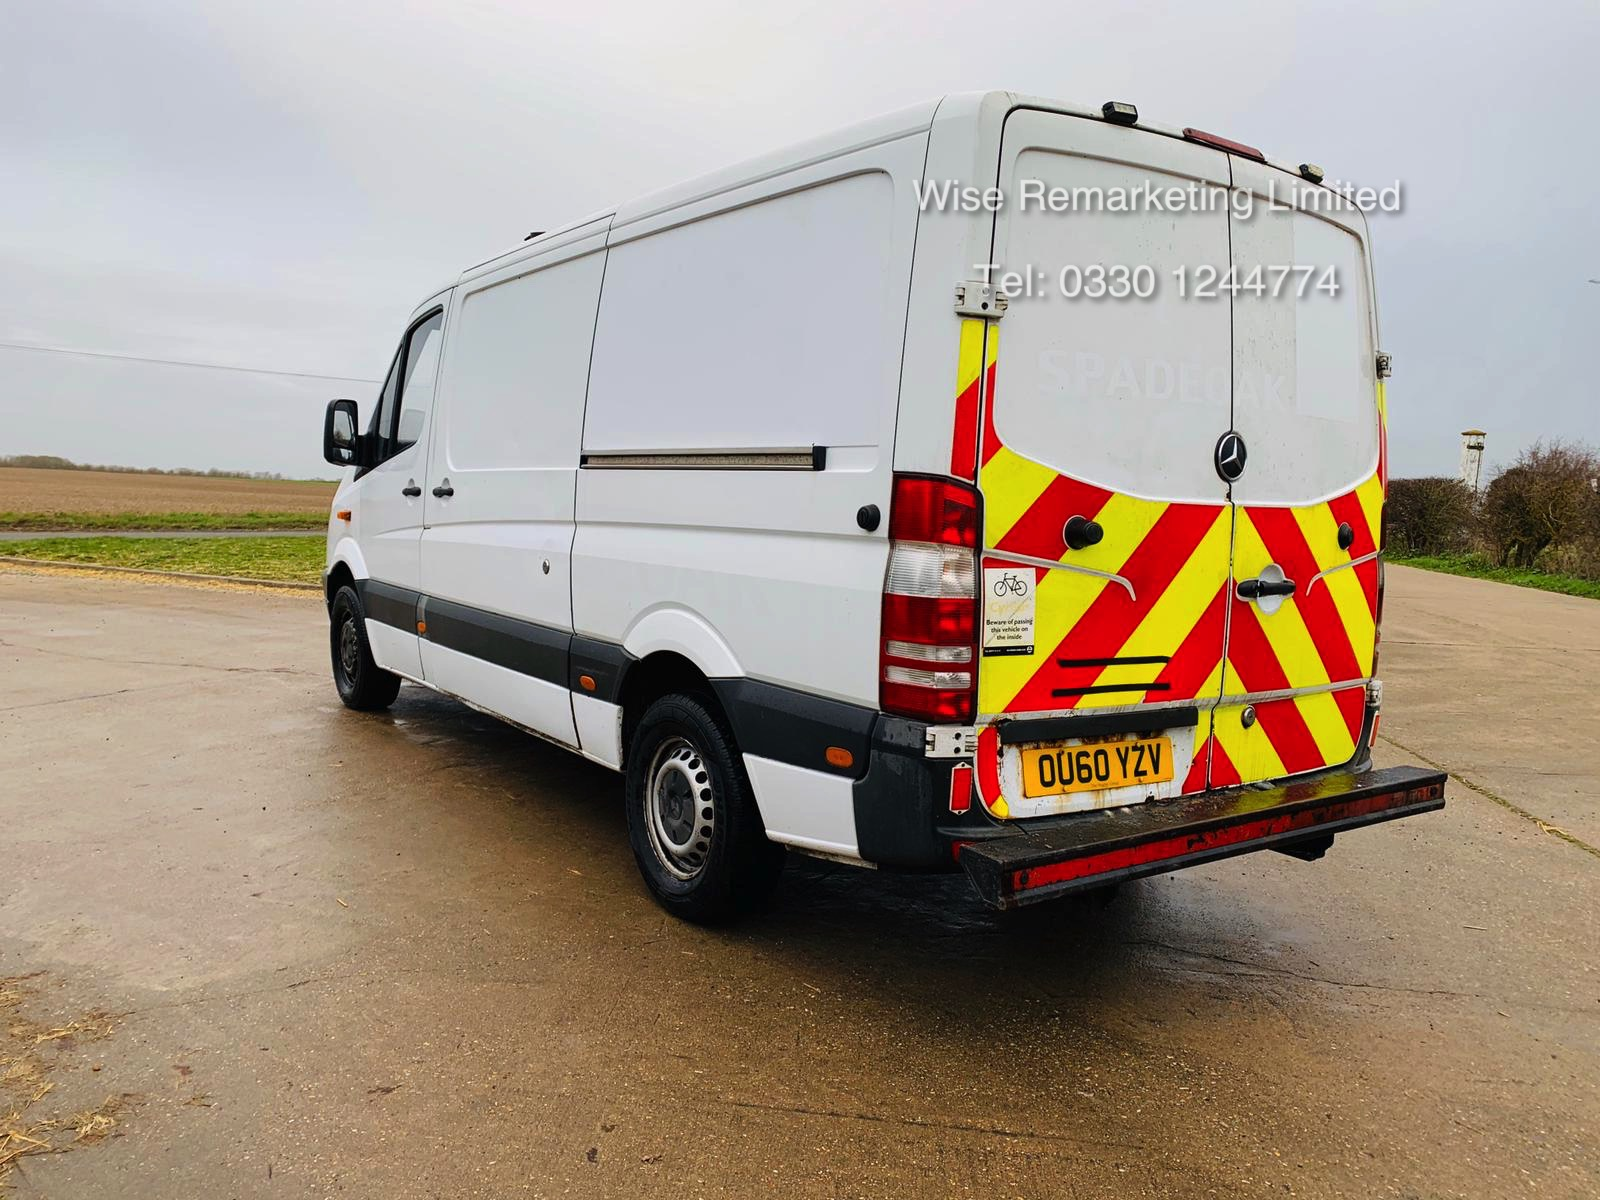 Reserve Met Mercedes Sprinter 313 CDI 2.1 TD *Automatic Triptronic Gearbox* - 2011 Model - Ply Lined - Image 3 of 15